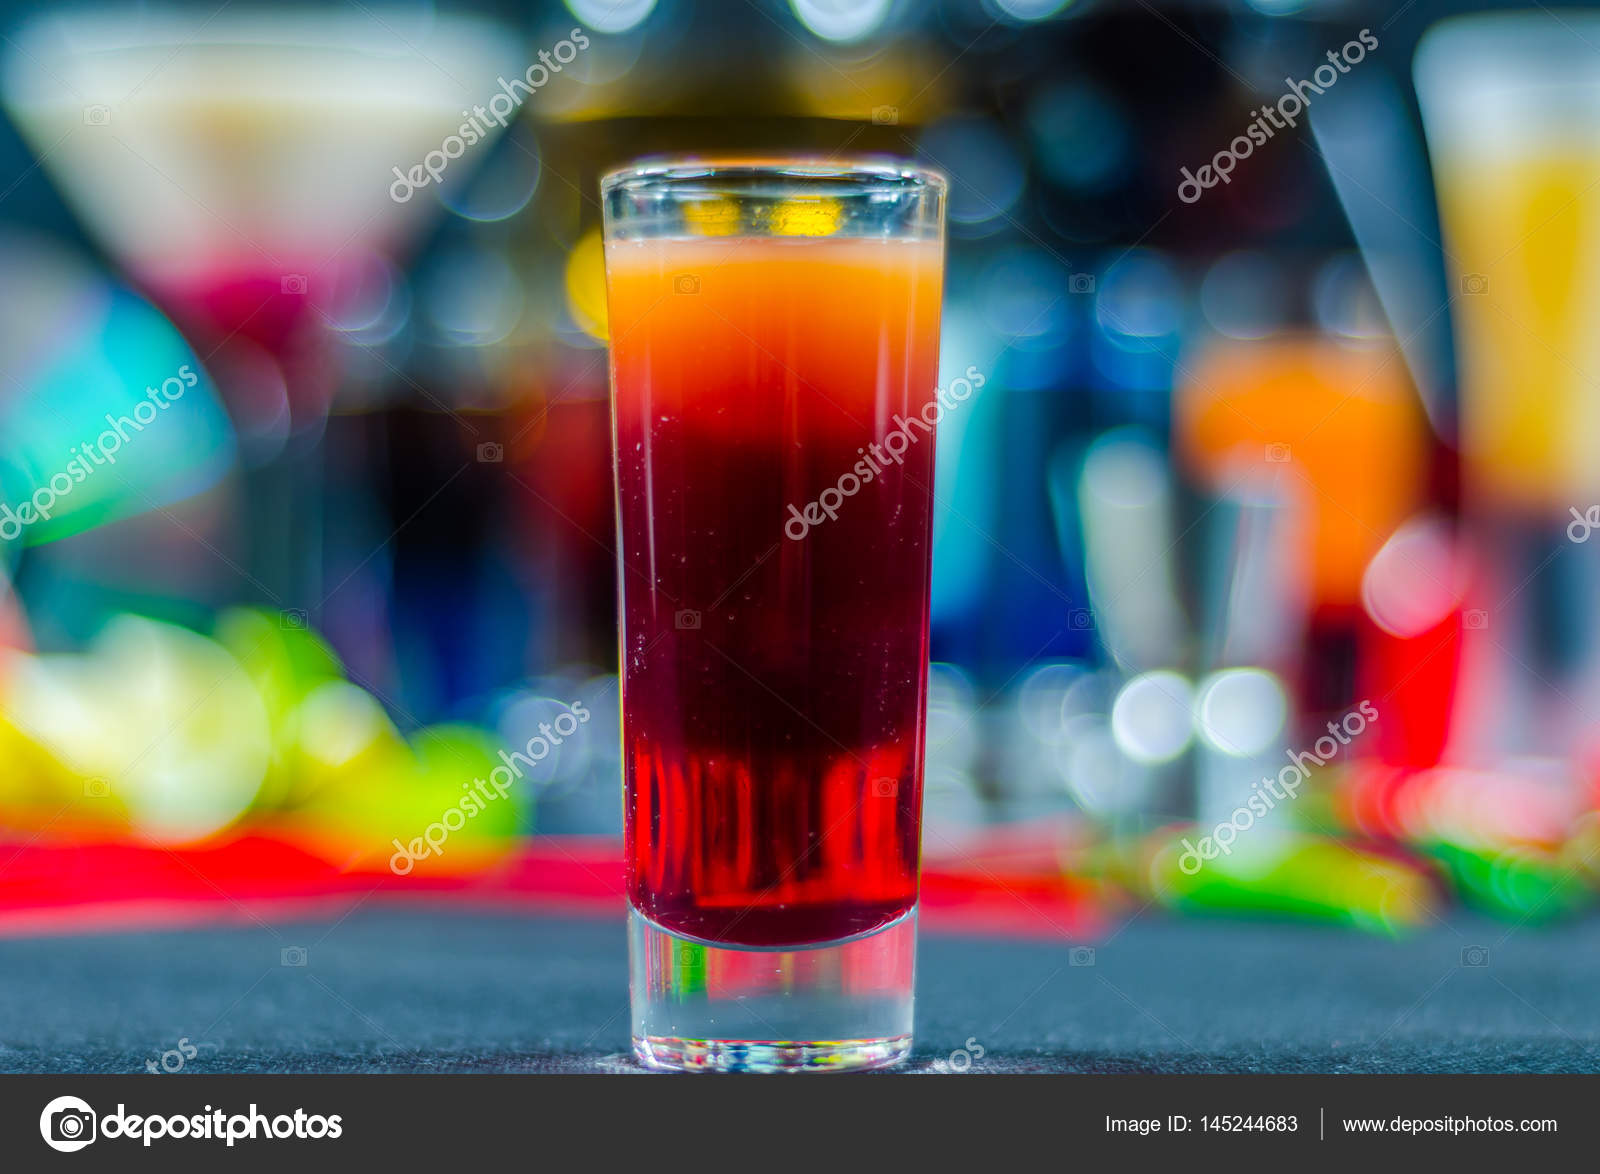 colorful alcoholic shots 53101 investingbb